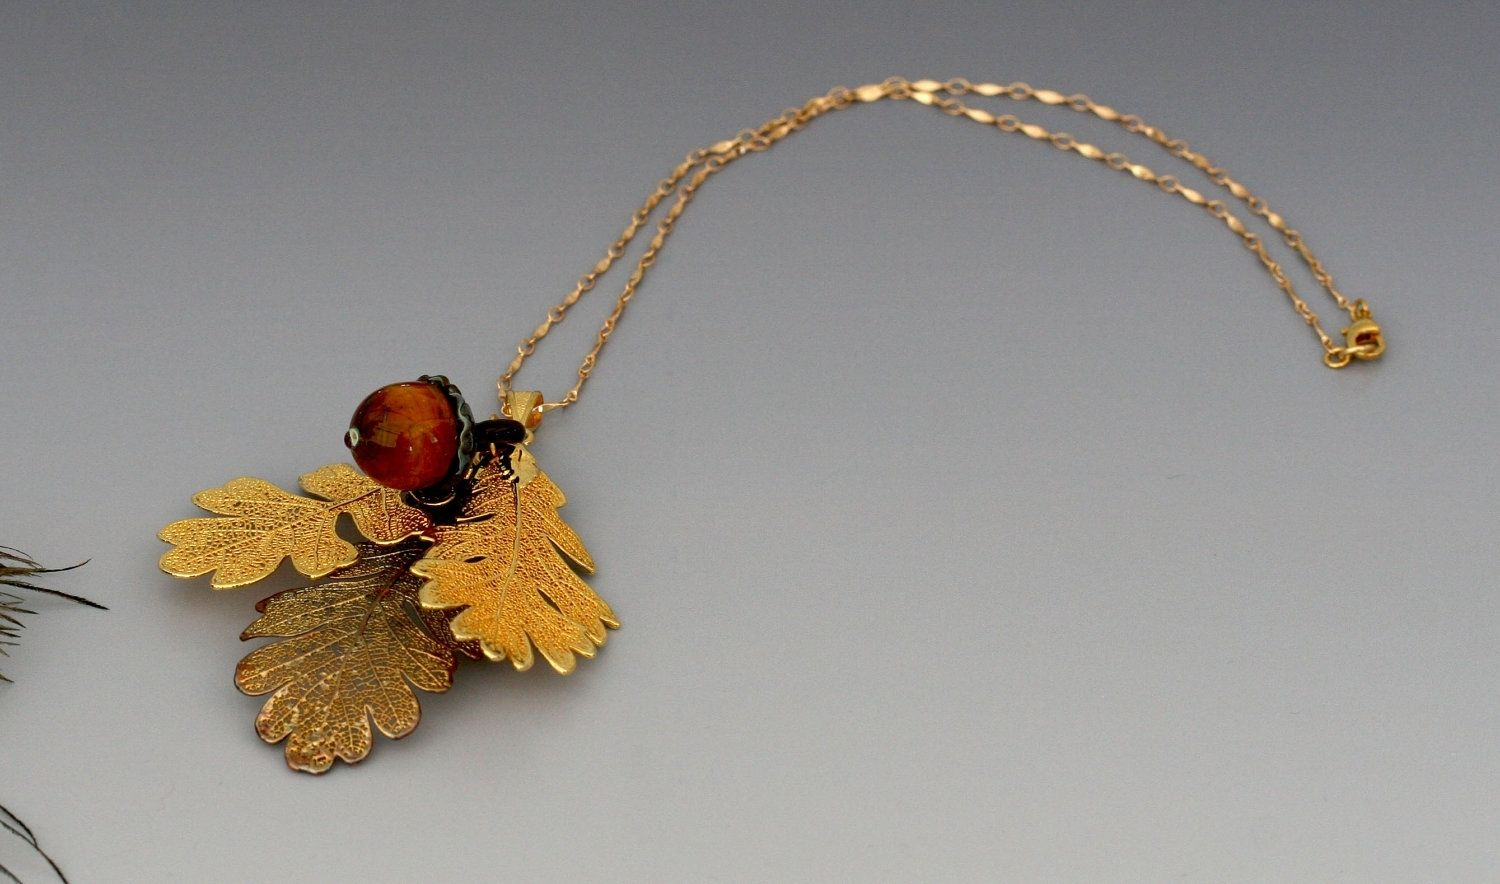 Gold And Copper : Handmade rowen gold and copper electroplate oak leaves with